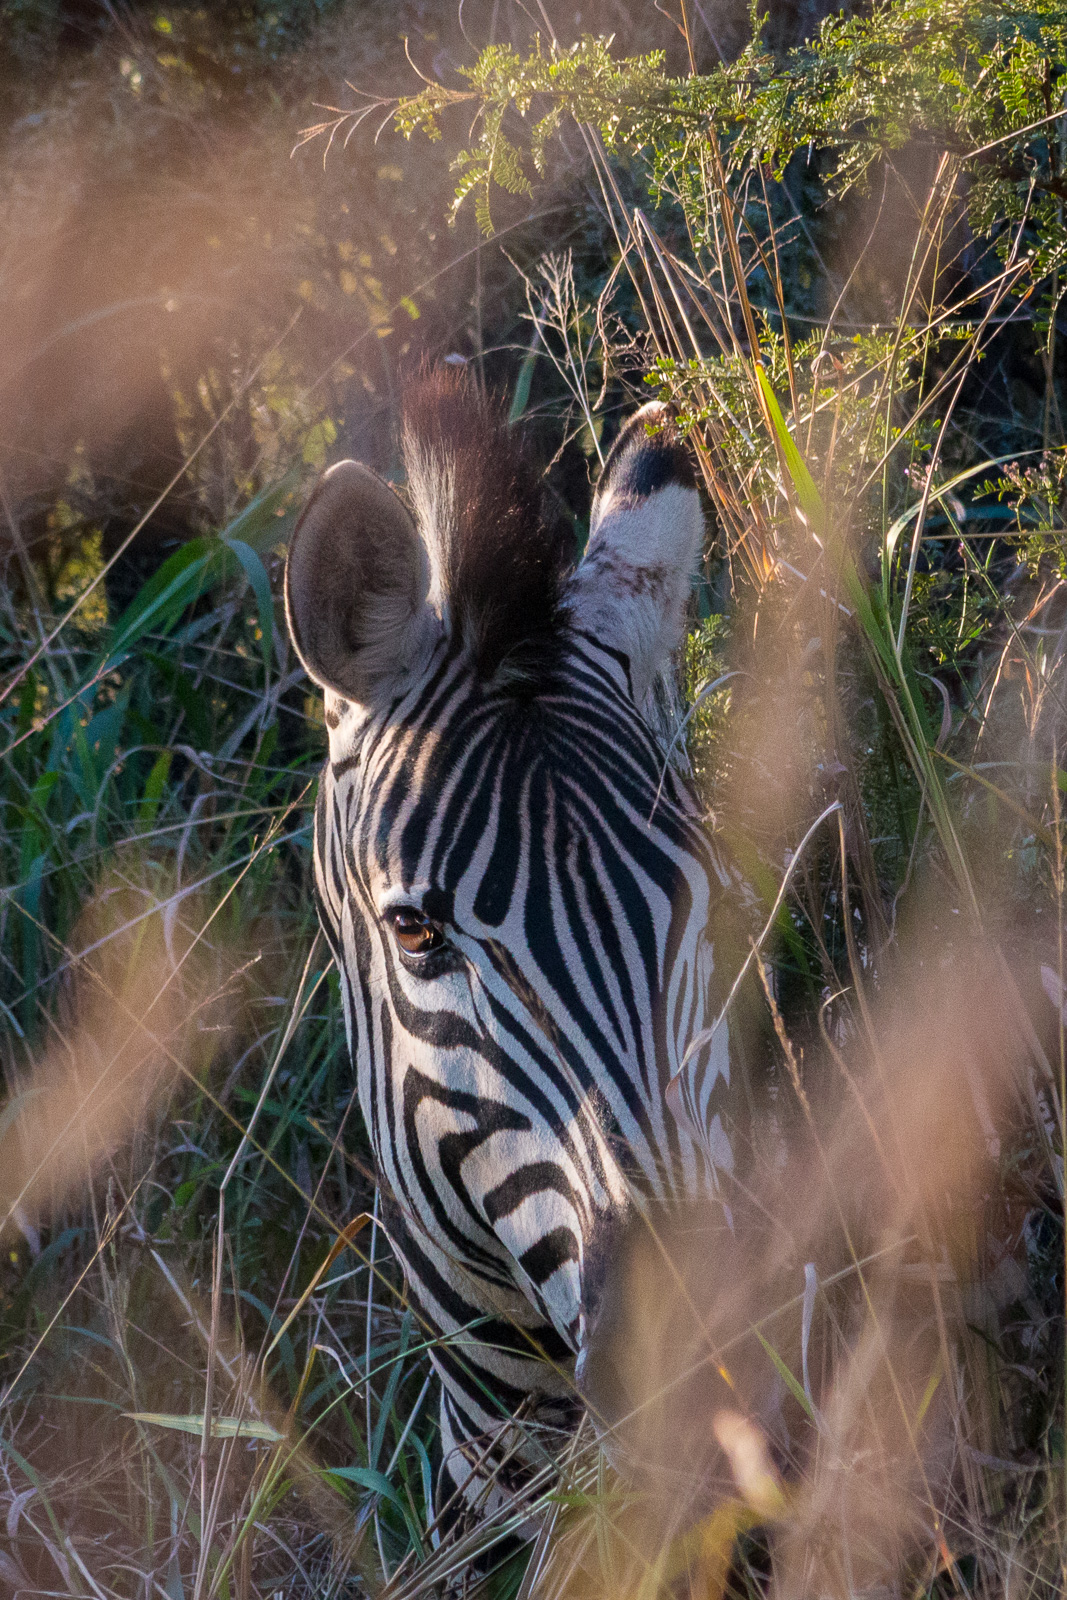 Zebra at dusk from a game drive in South Africa